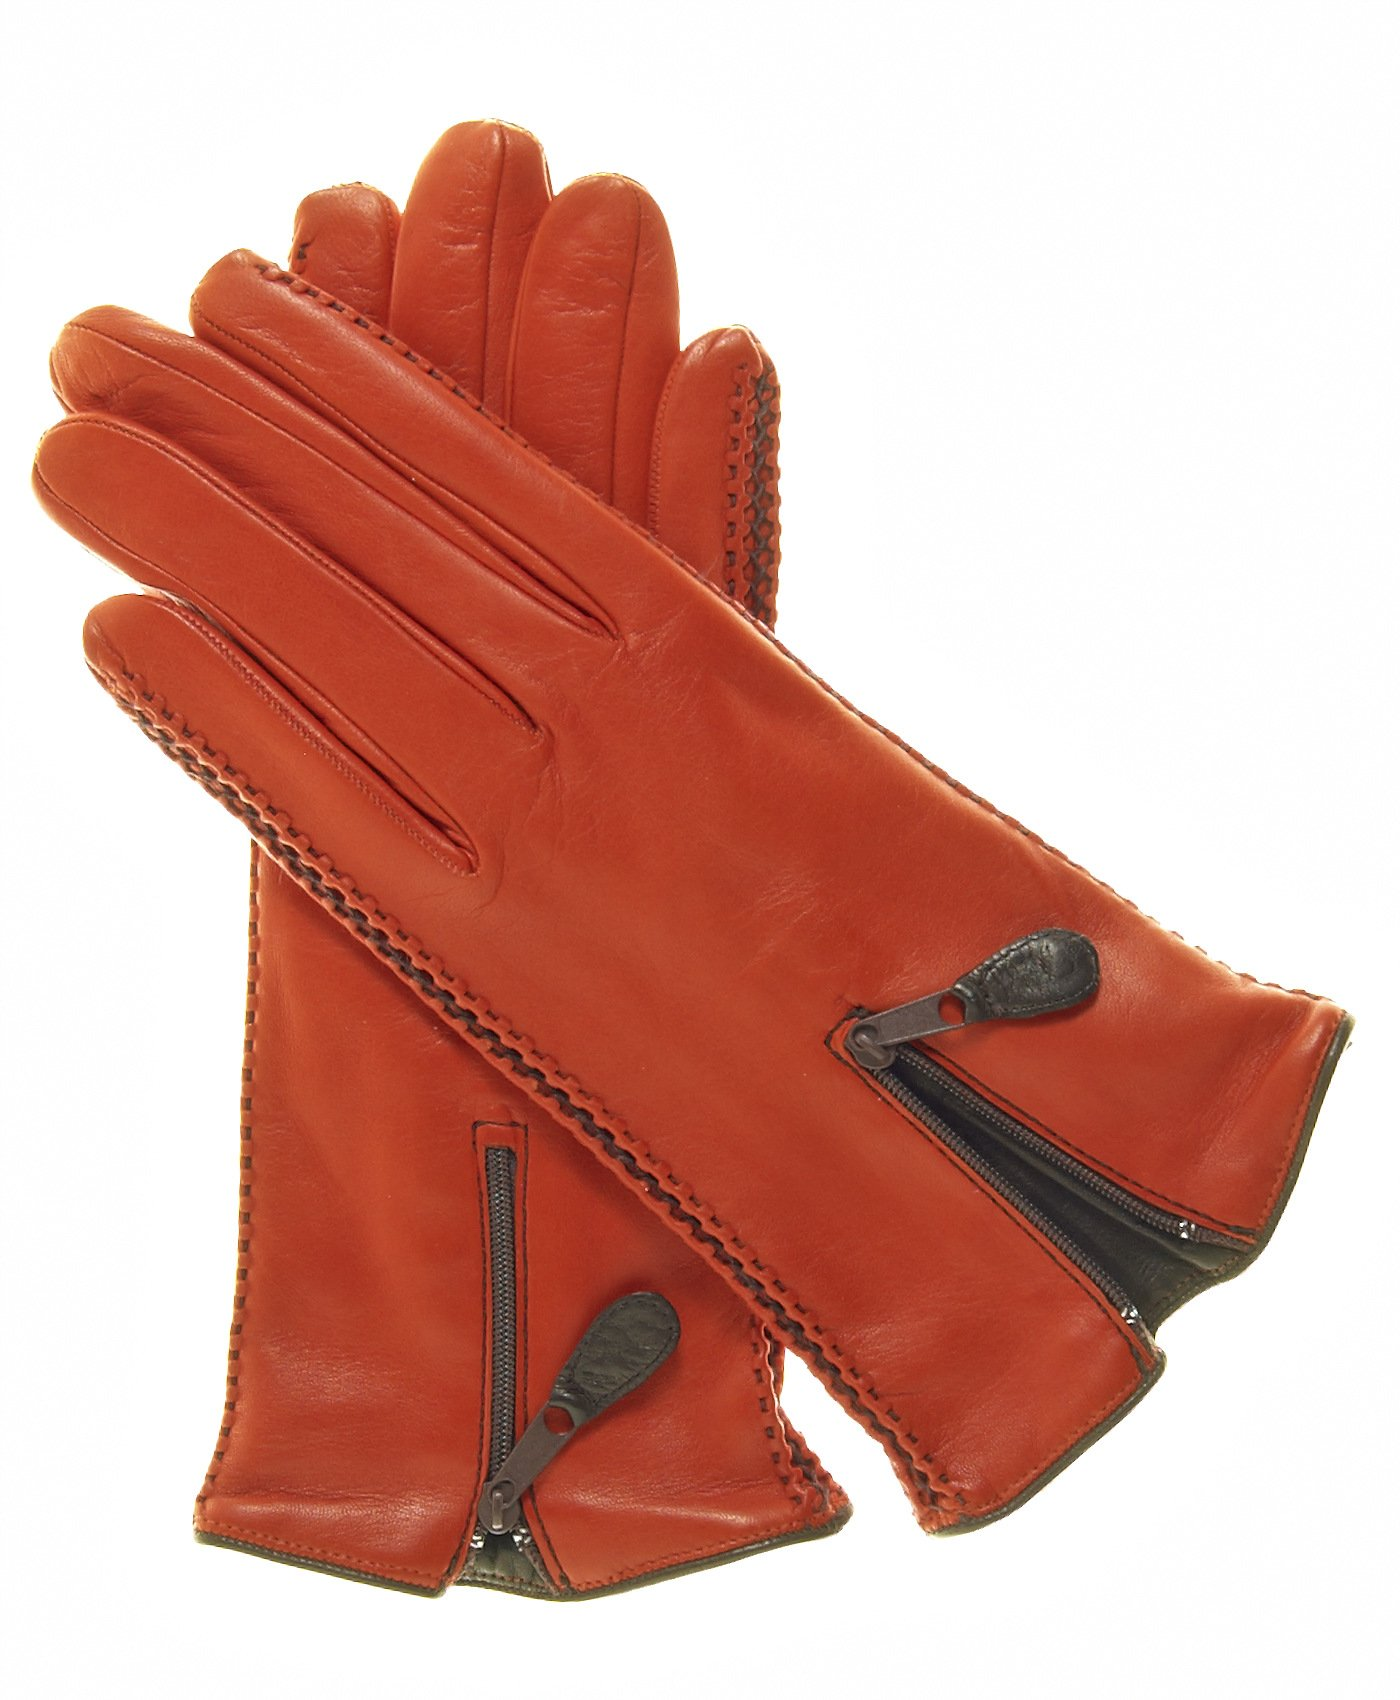 Fratelli Orsini Women's Lambskin Cashmere Lined Leather Gloves with Zipper Size 6 Color Persimmon